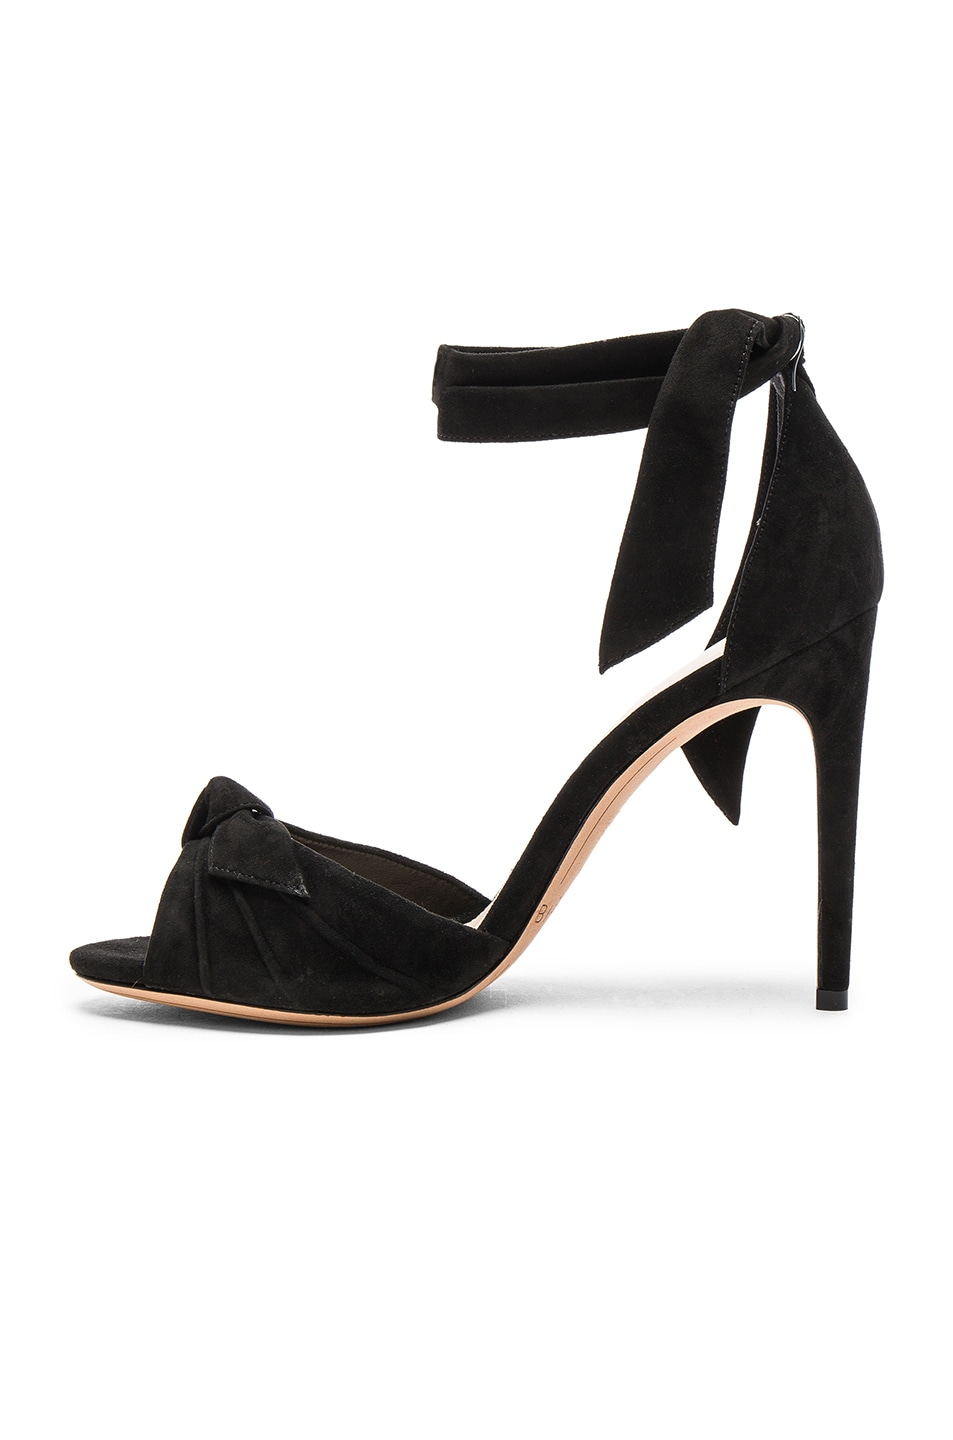 Image 5 of Alexandre Birman Suede New Clarita Heels in Black